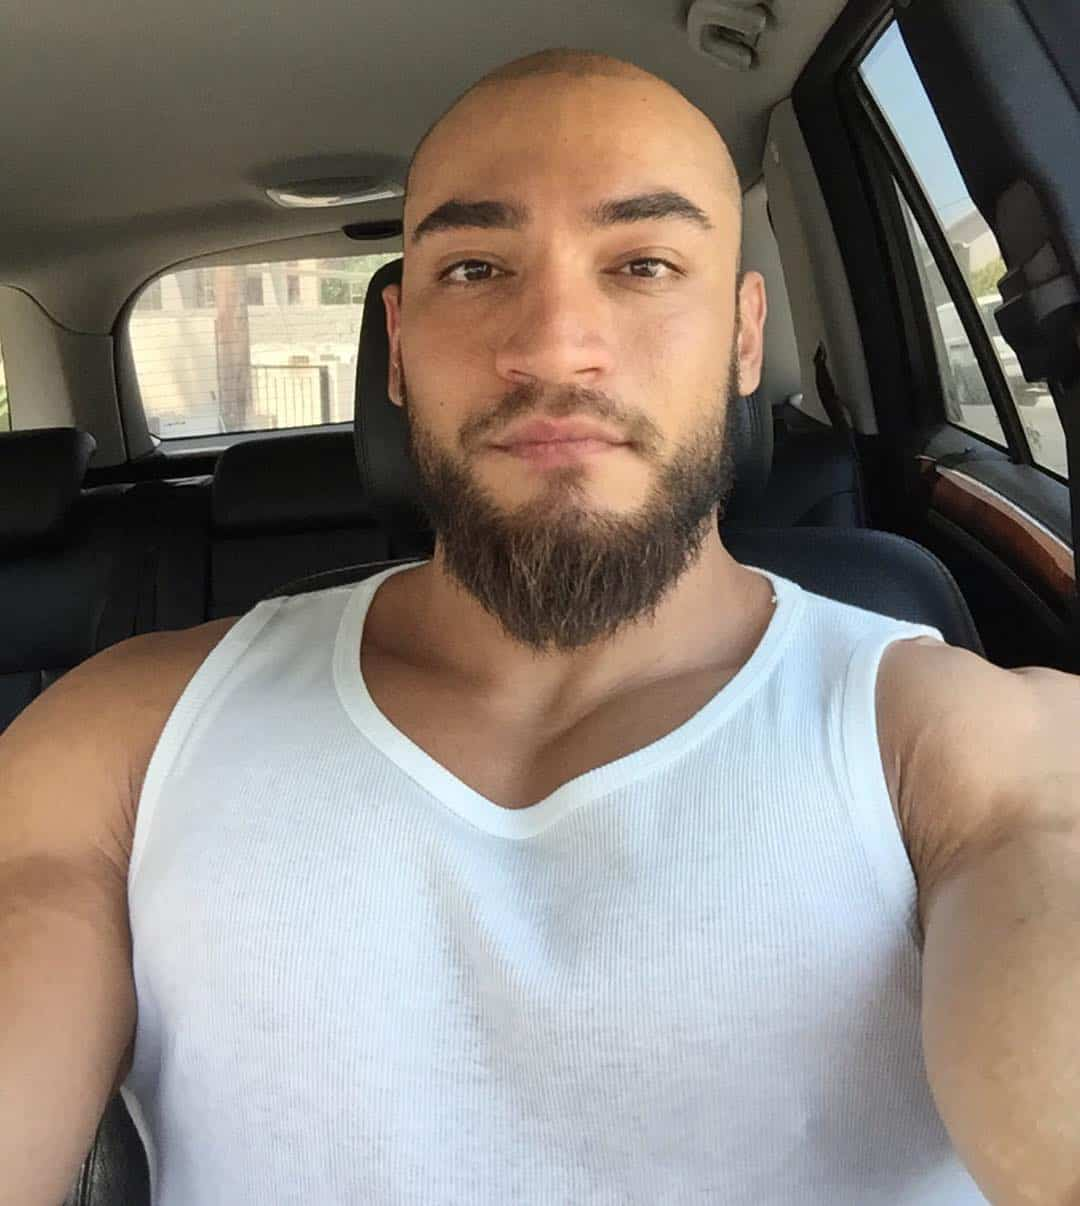 Cool 20 Reasons To Be Bald With Beard Machos Style Short Hairstyles For Black Women Fulllsitofus